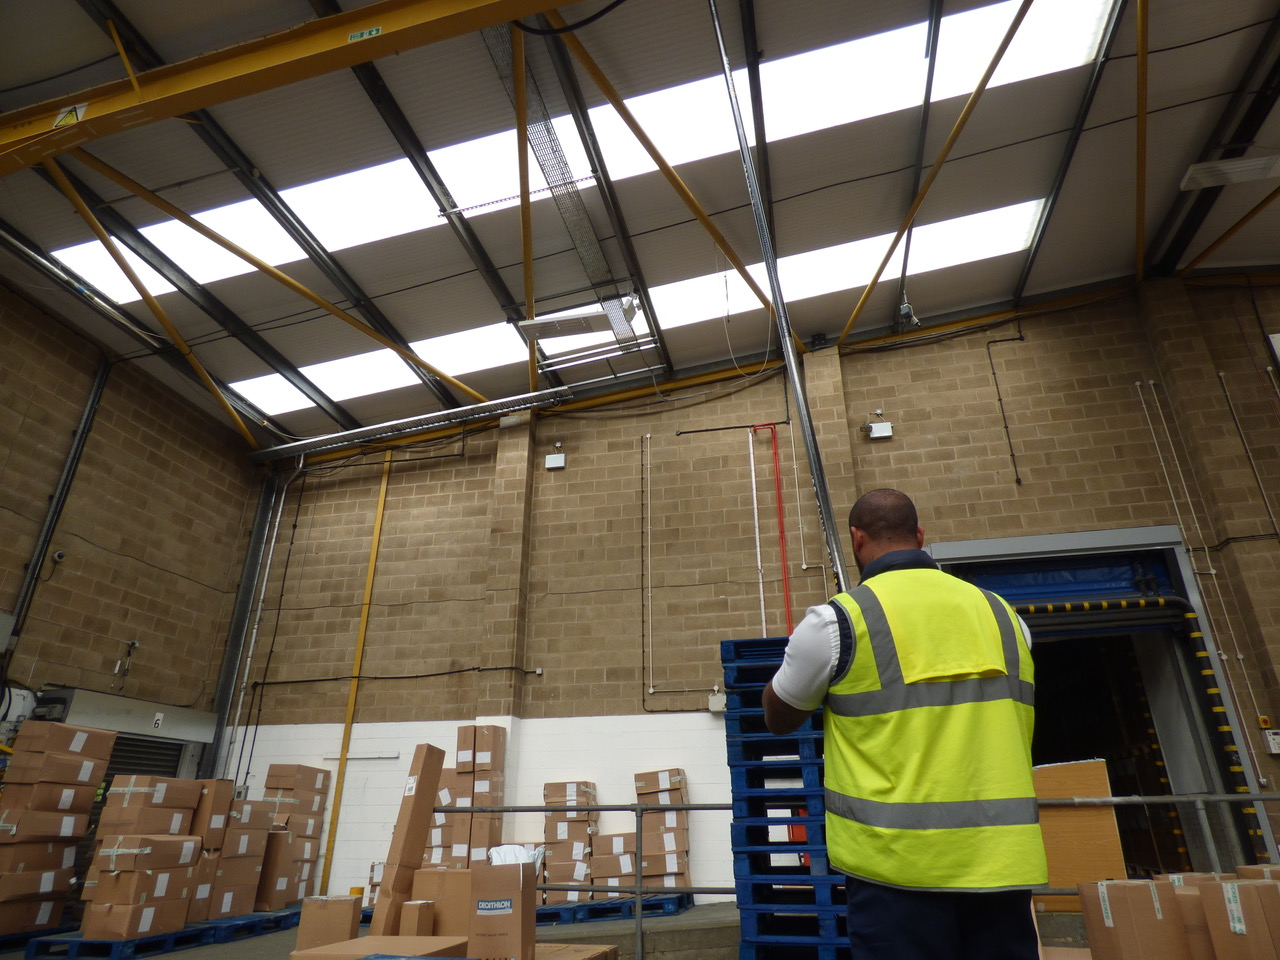 Warehouse cleaning with SpaceVac high level cleaning tool-2